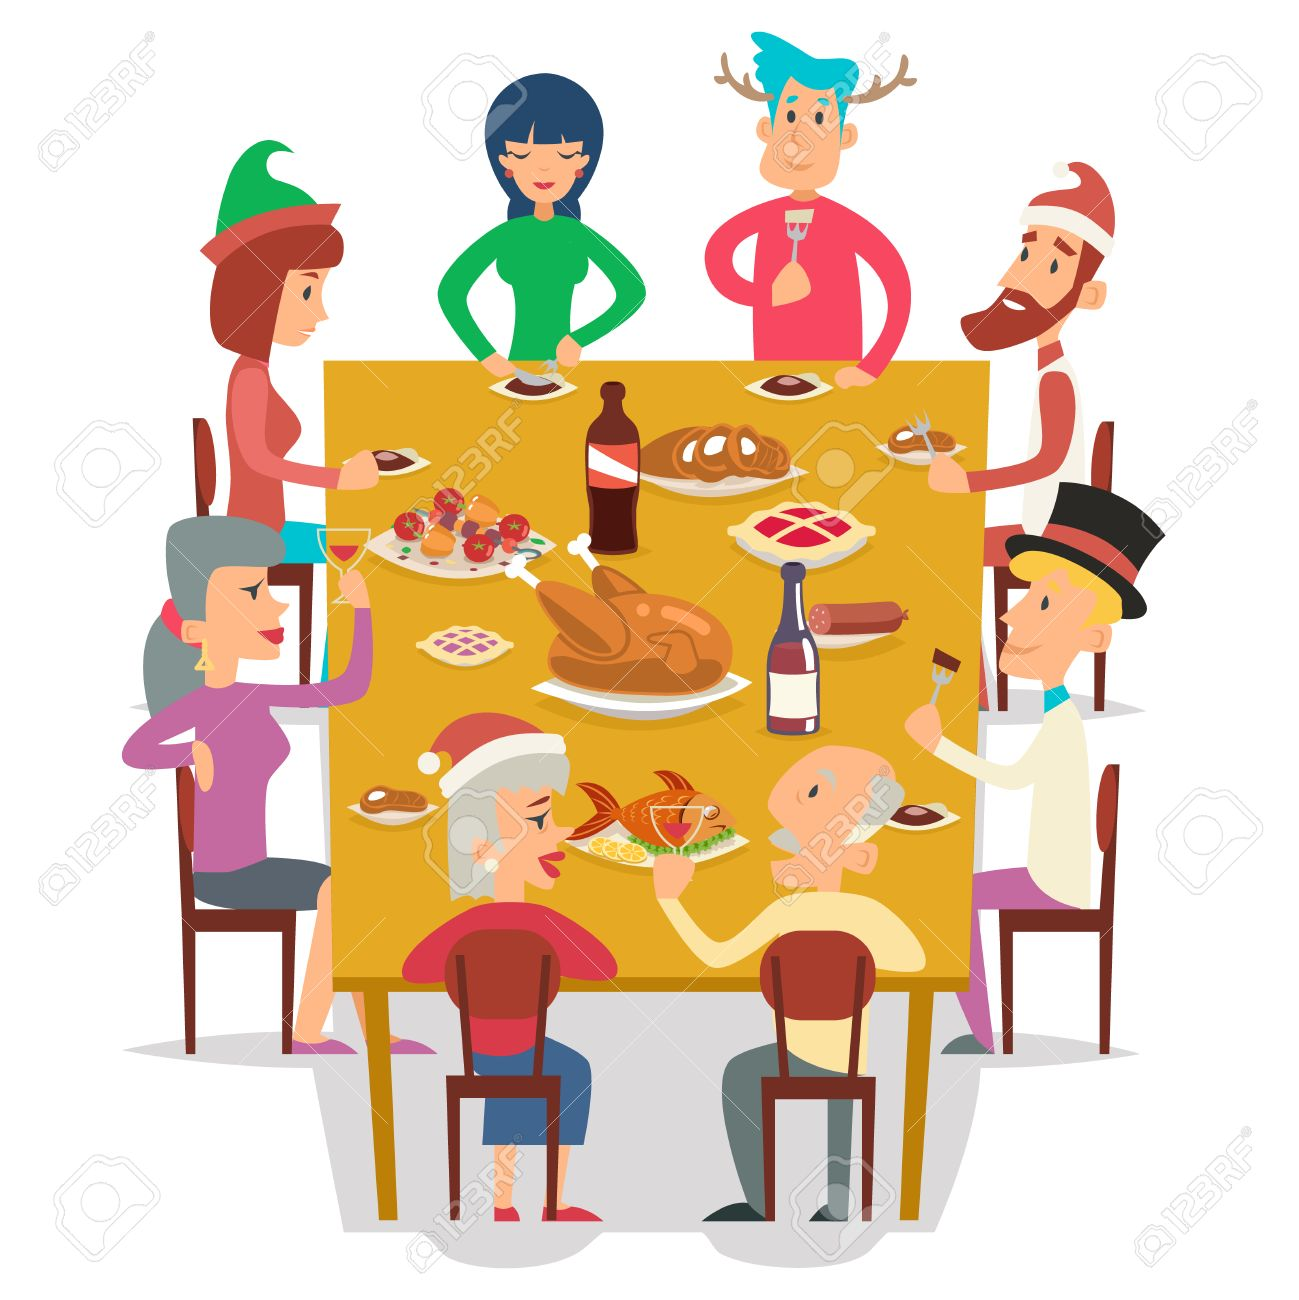 Christmas Group Friends Family Eat Meal Characters Celebration Meating New Year Party Design Vector Illustration Stock